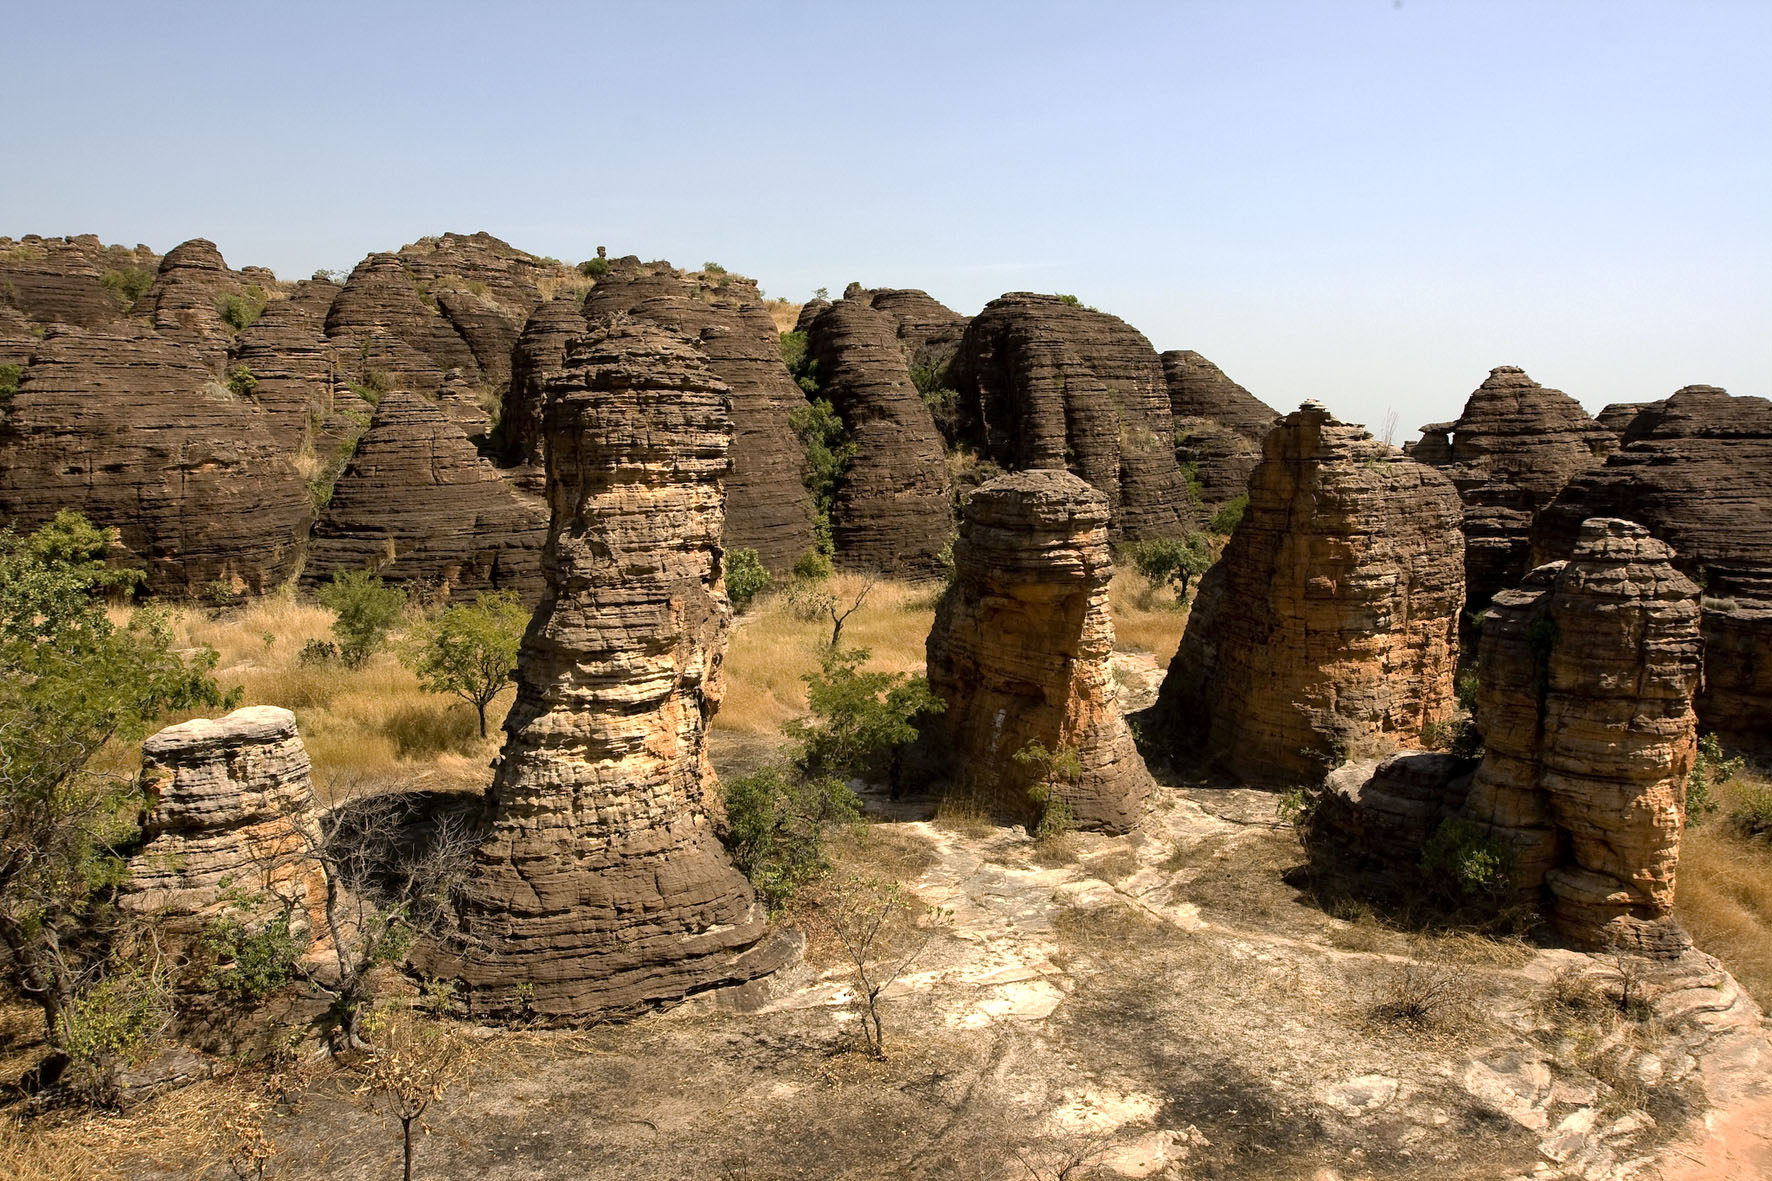 Domes of Fabedougou, Burkina Faso